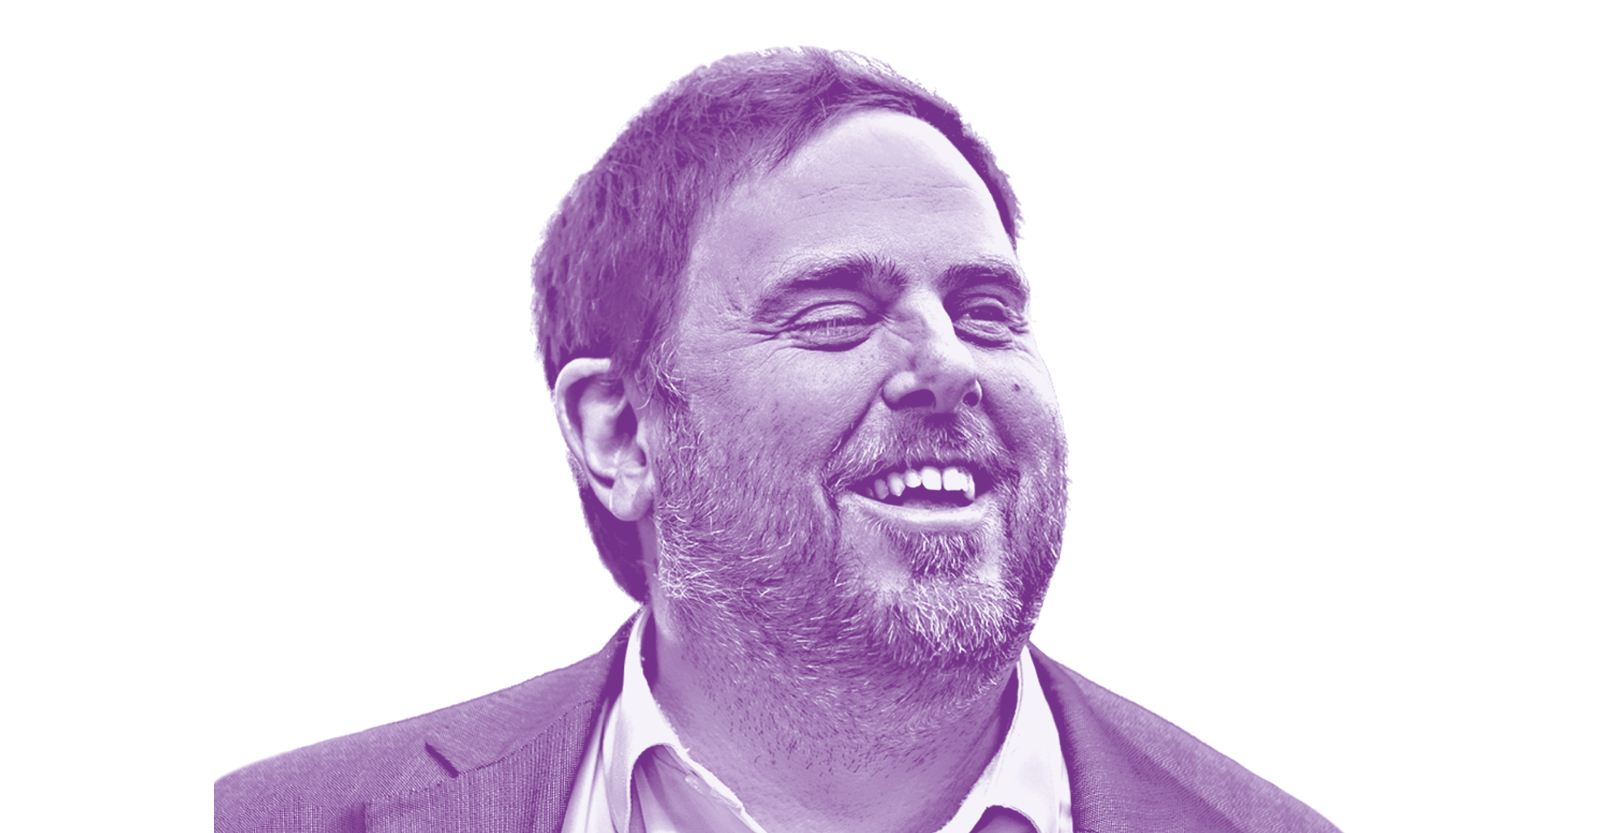 Oriol Junqueras elected as EFA Lead Candidate for European elections